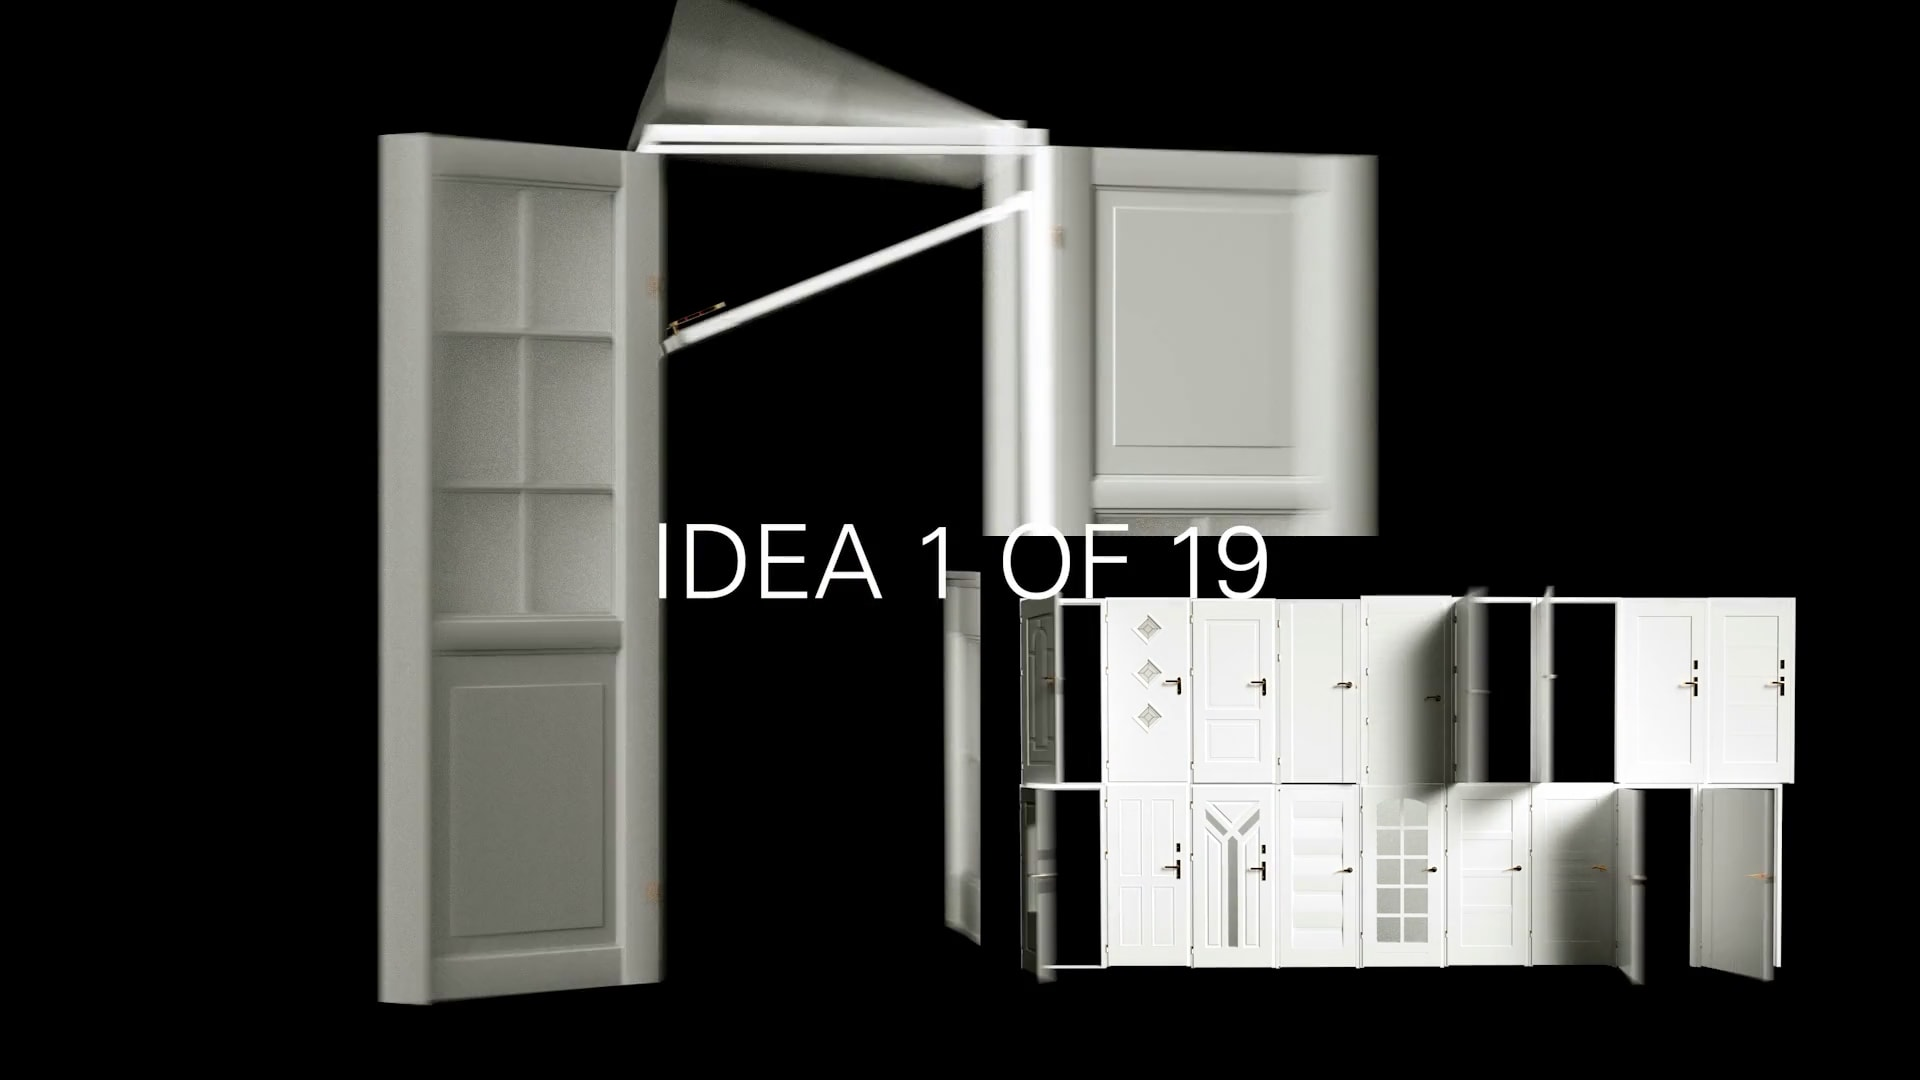 50 Days self initiated experiments doors surreal 3d cgi design video